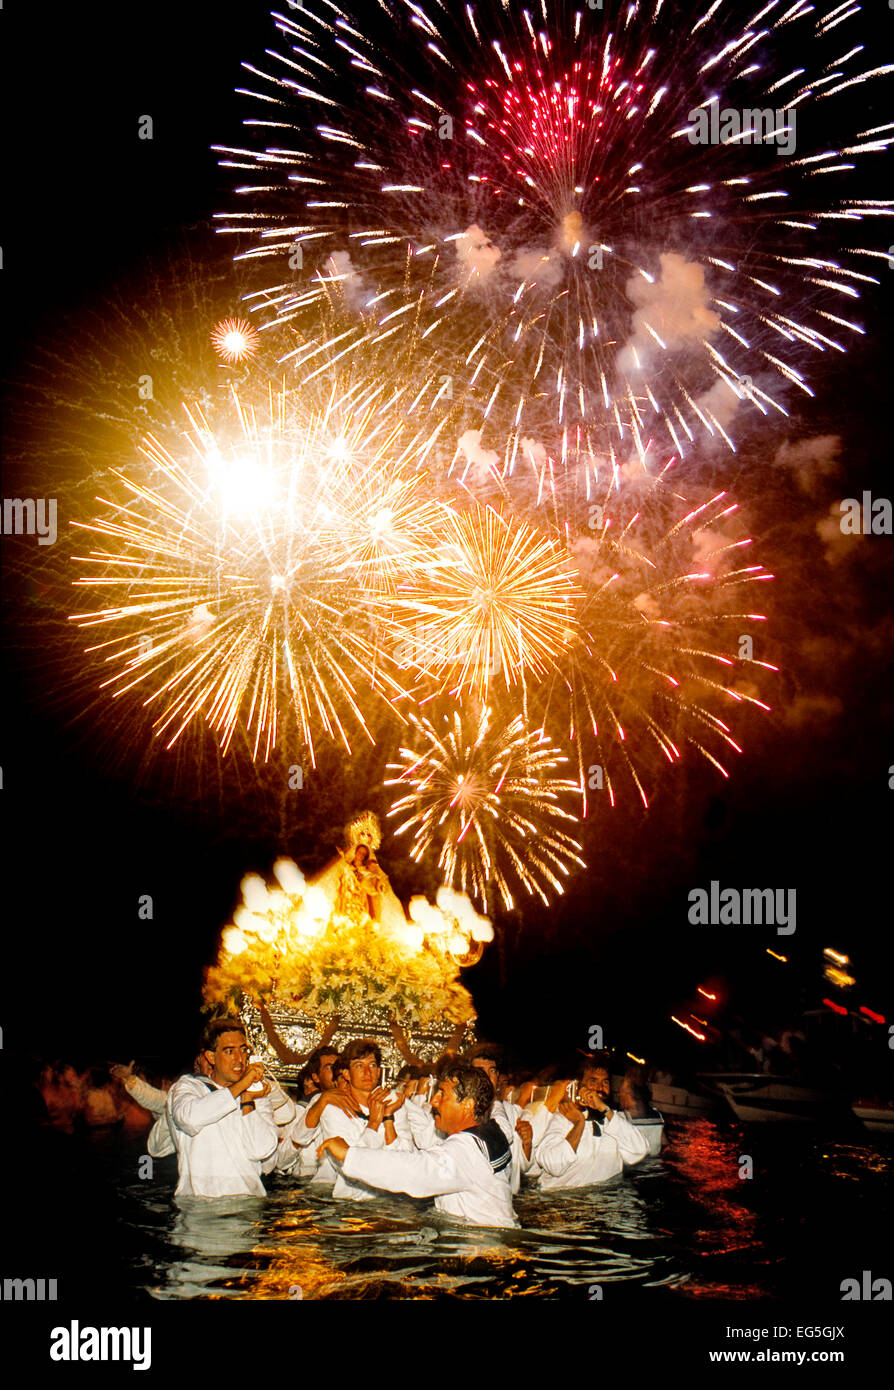 Fireworks seafaring procession Virgen del Carmen Fuengirola Malaga Andalusia Spain - Stock Image